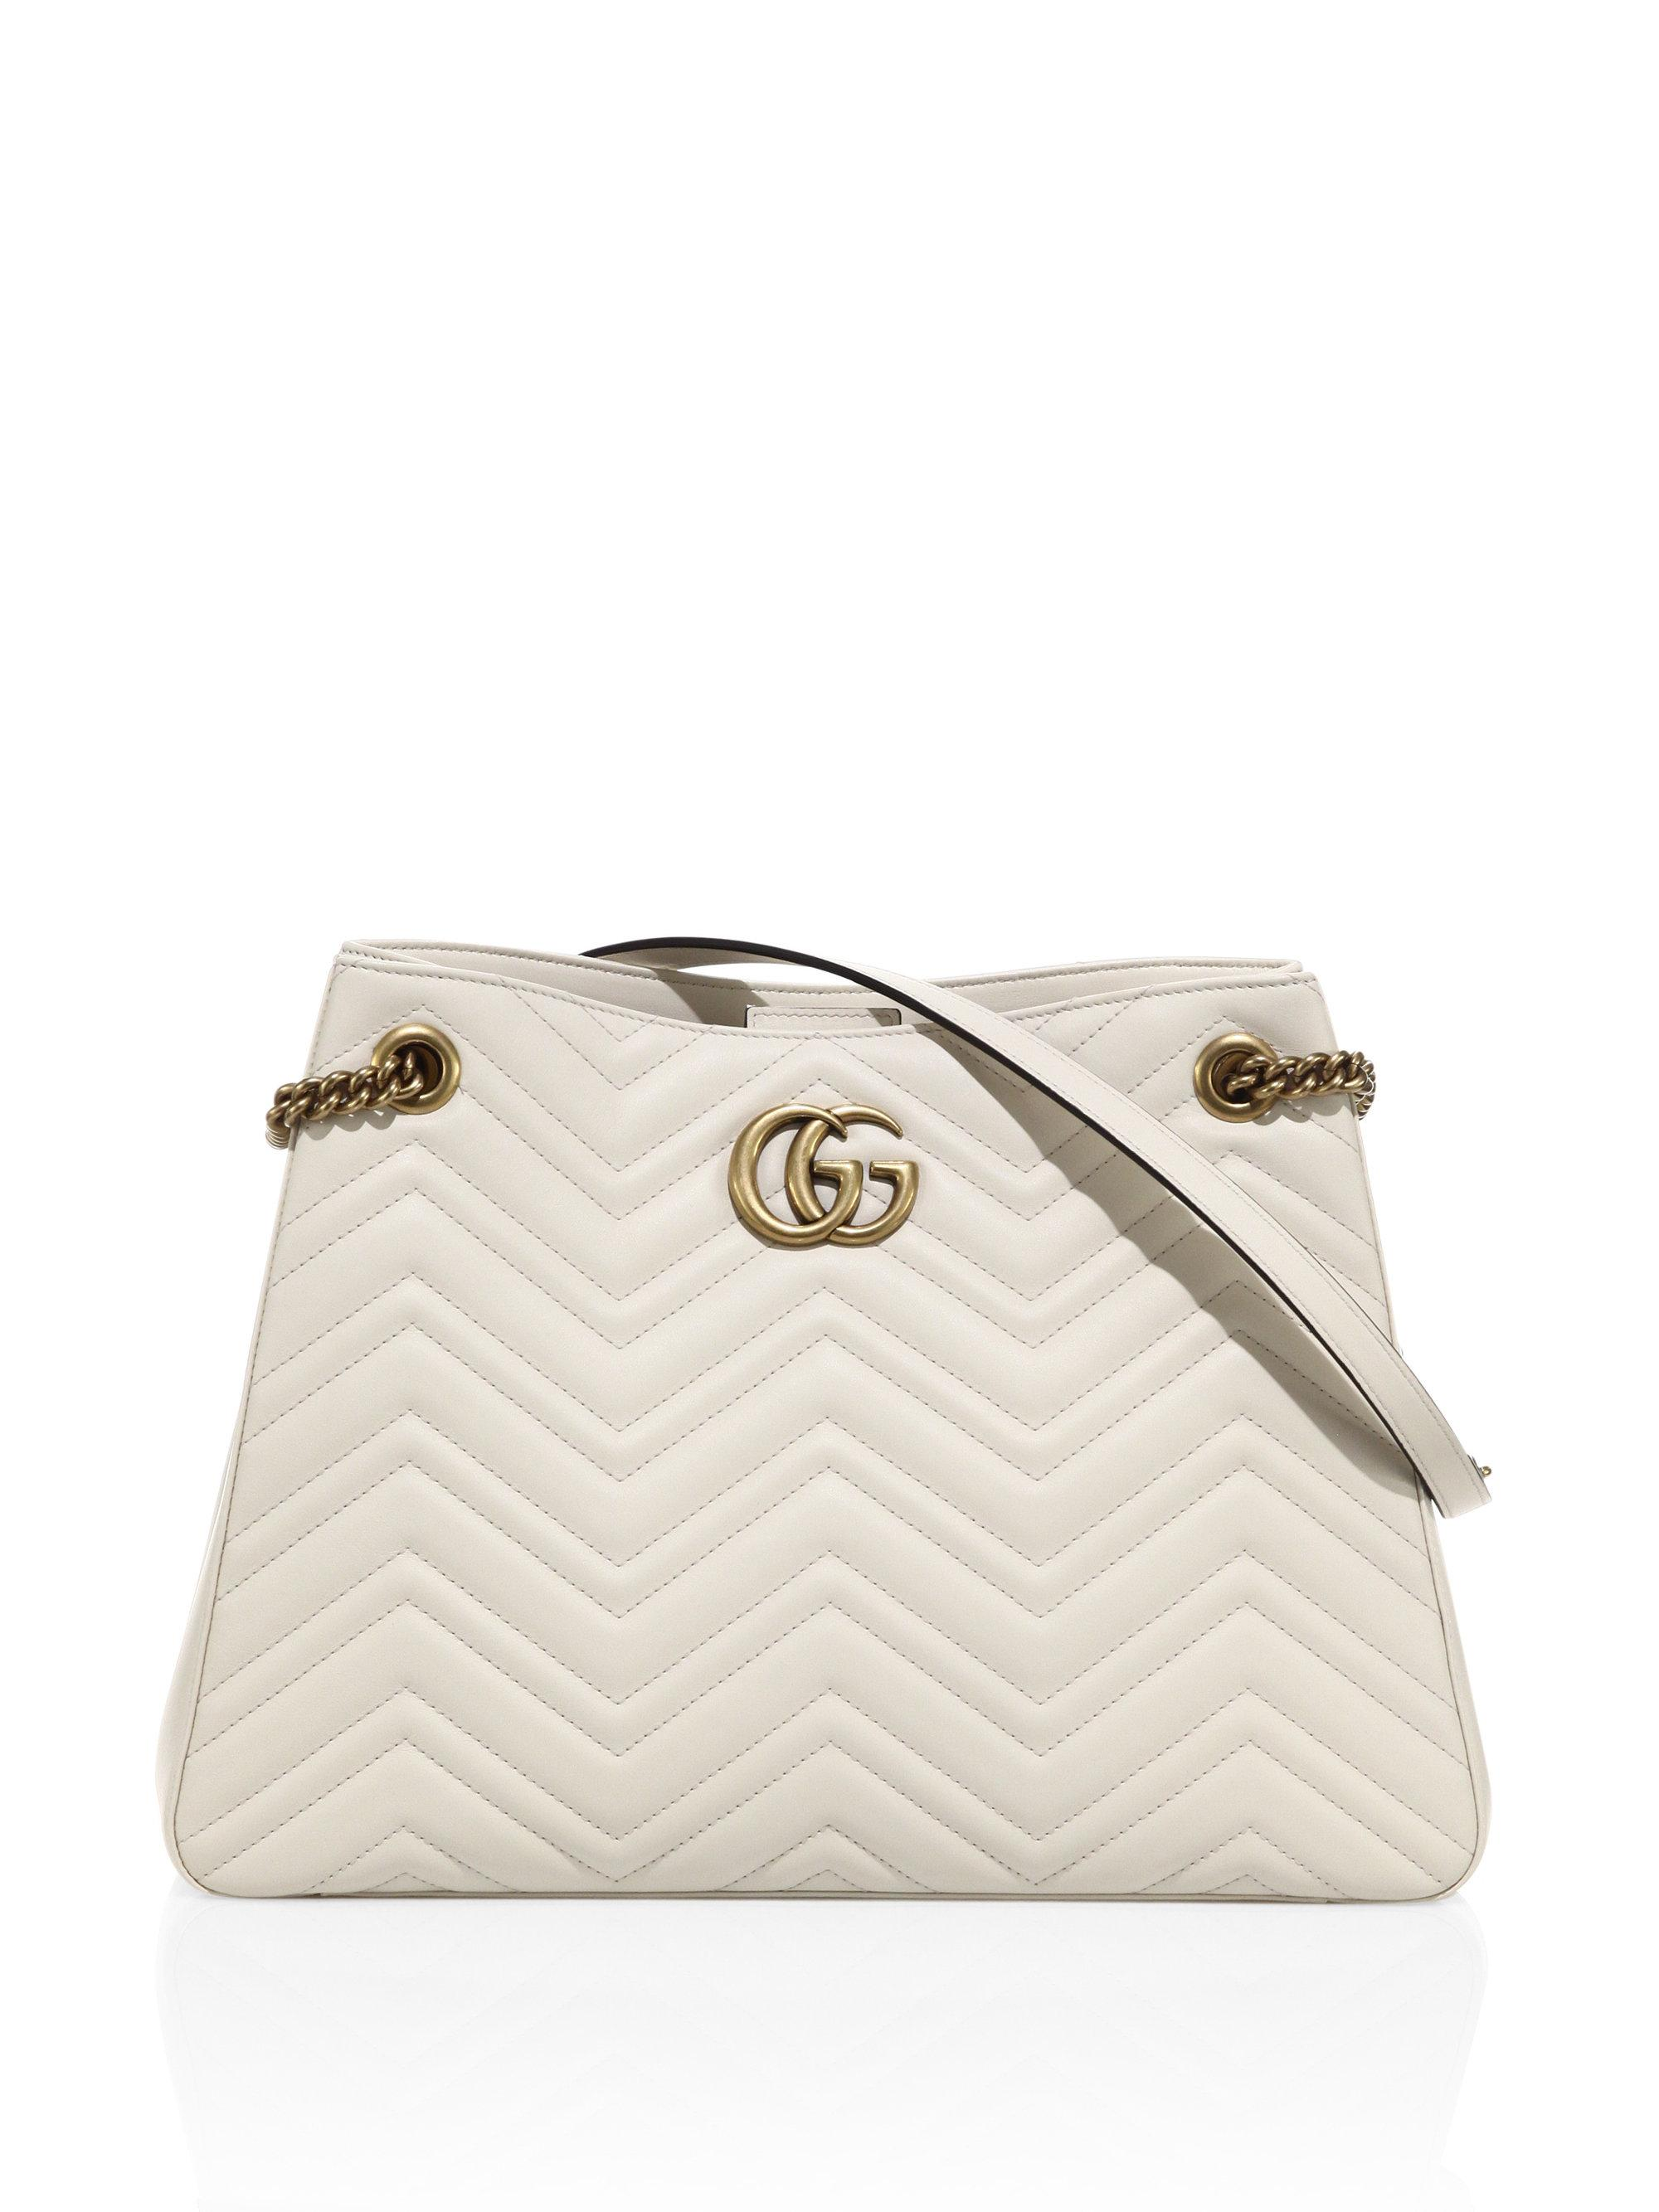 76980ec334d7 Gucci Gg Marmont Matelasse Leather Shoulder Bag in White - Lyst